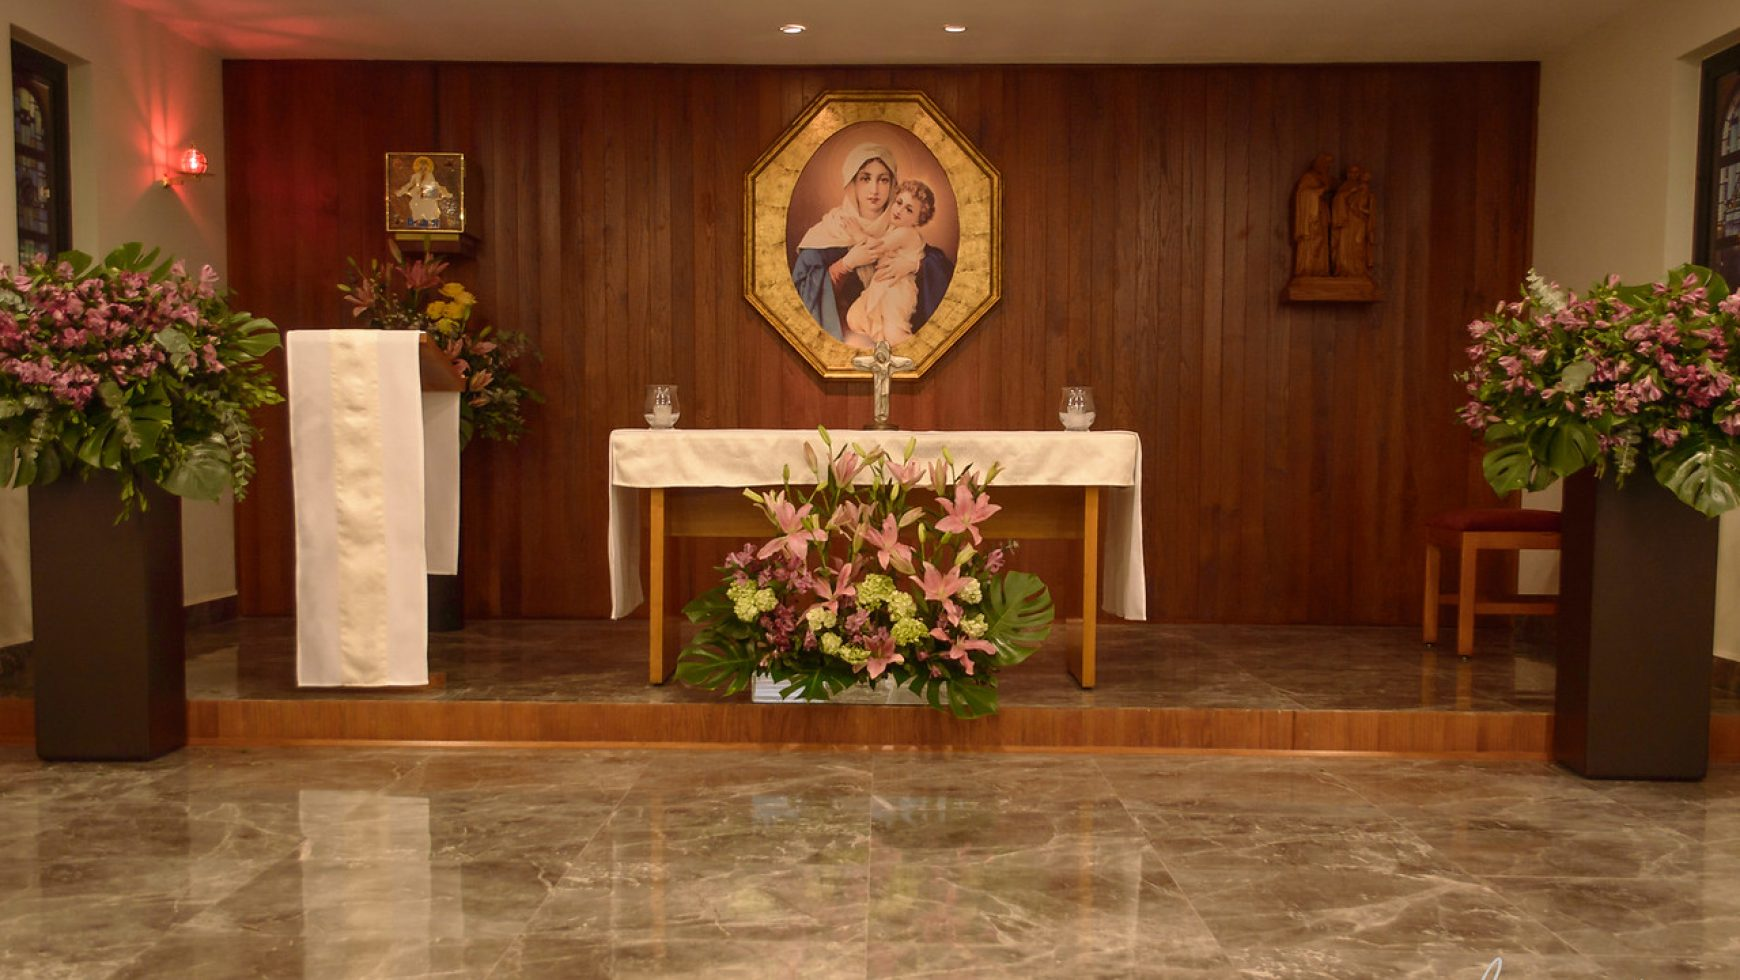 BENDICIÓN CAPILLA DEL MOVIMIENTO Y SALON PADRE JOSE KENTENICH